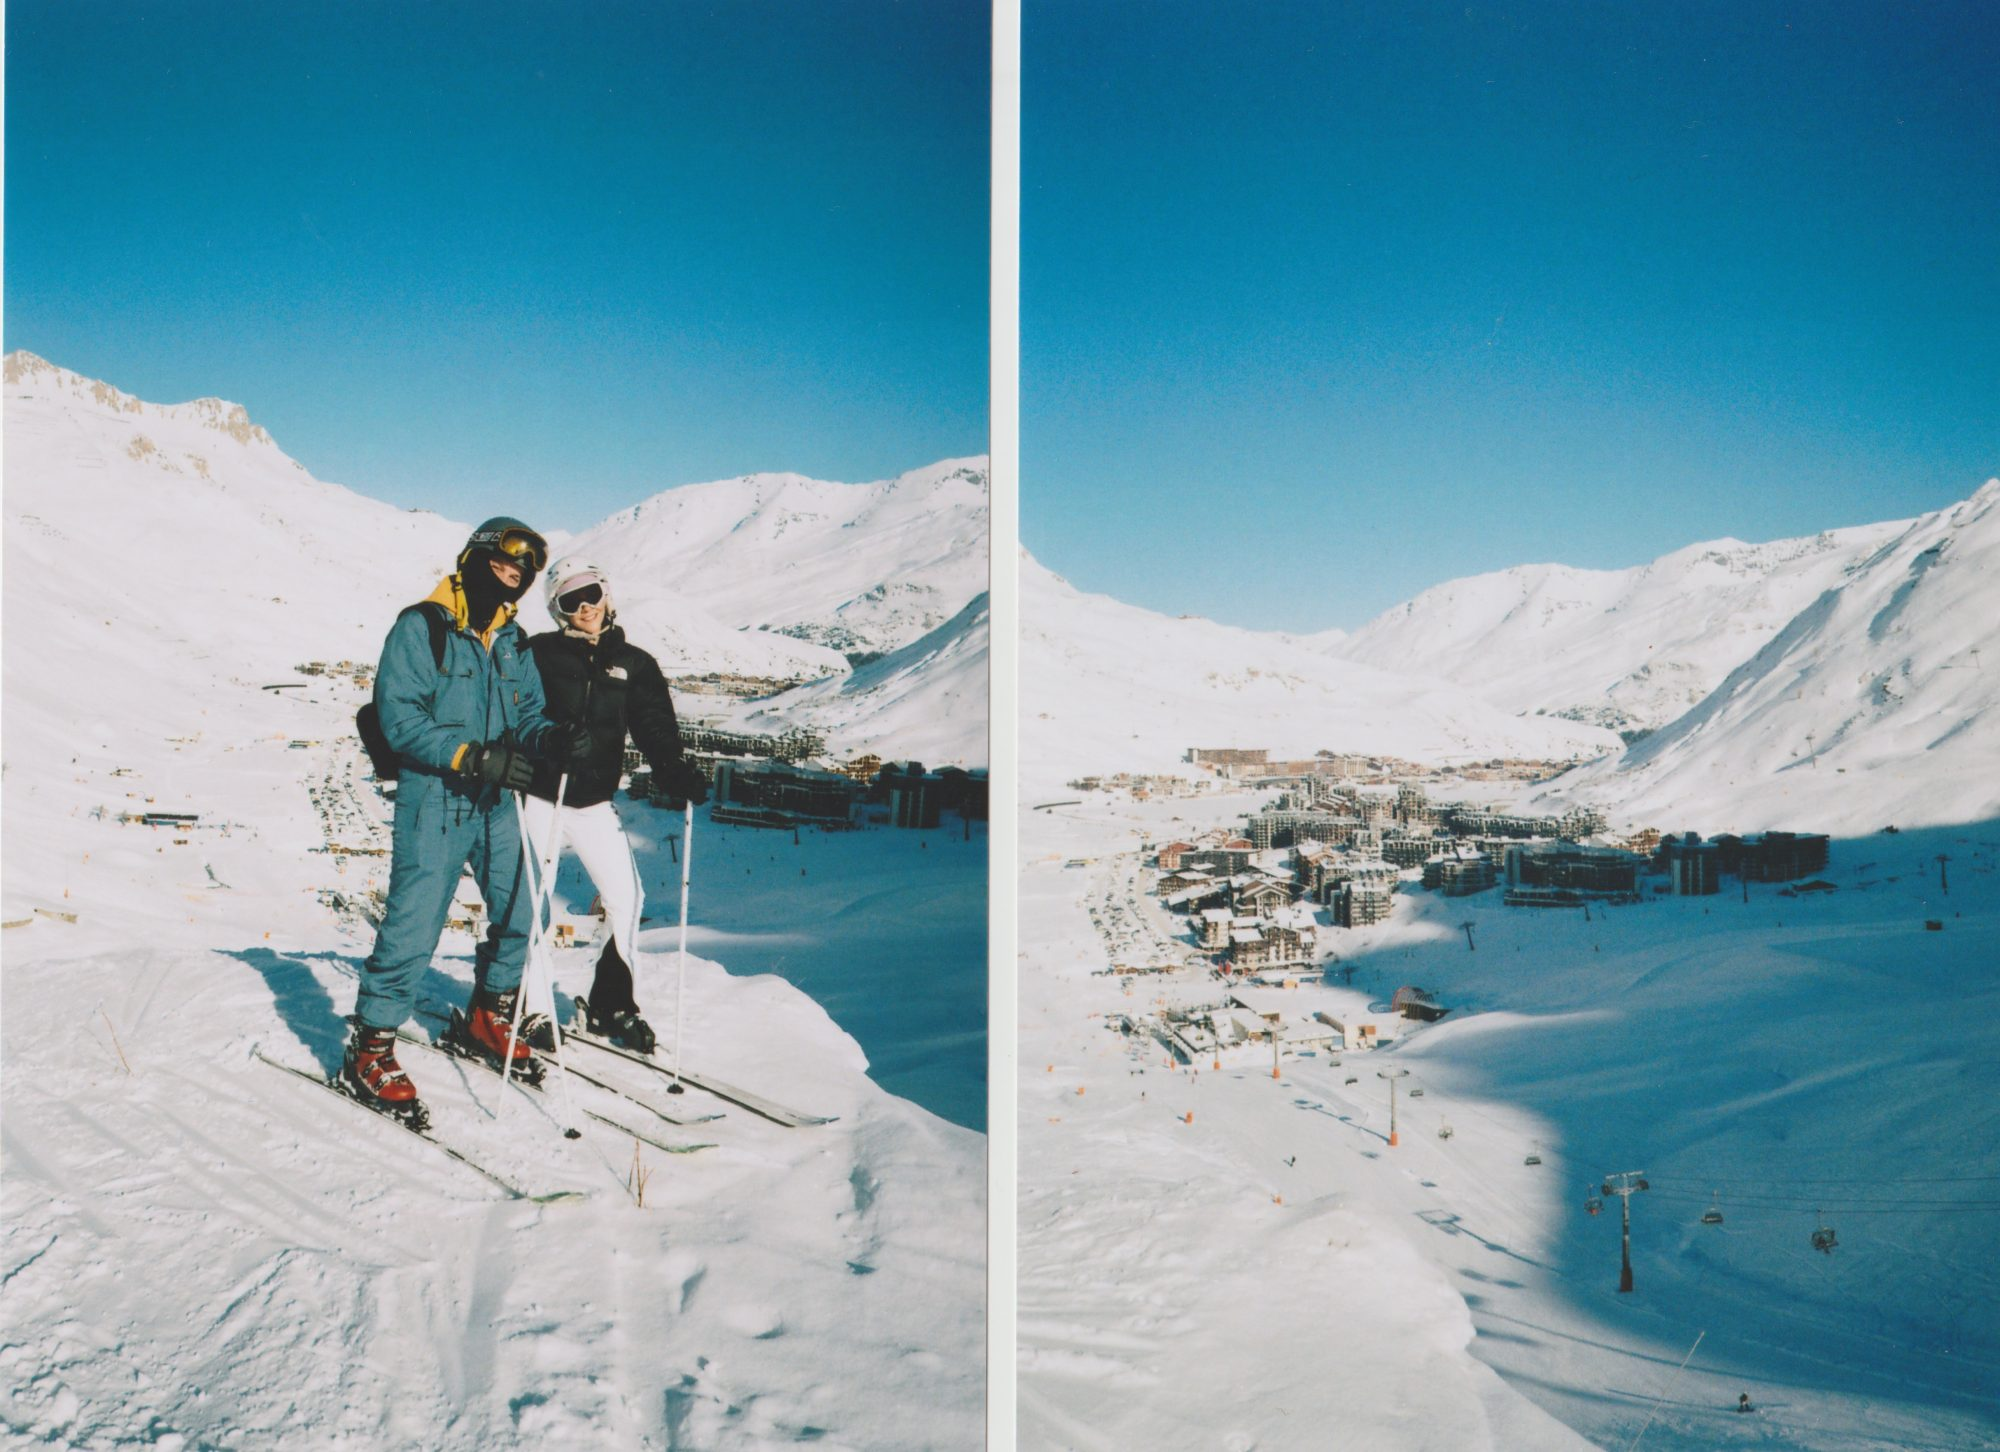 SKIING VAL D'ISERE